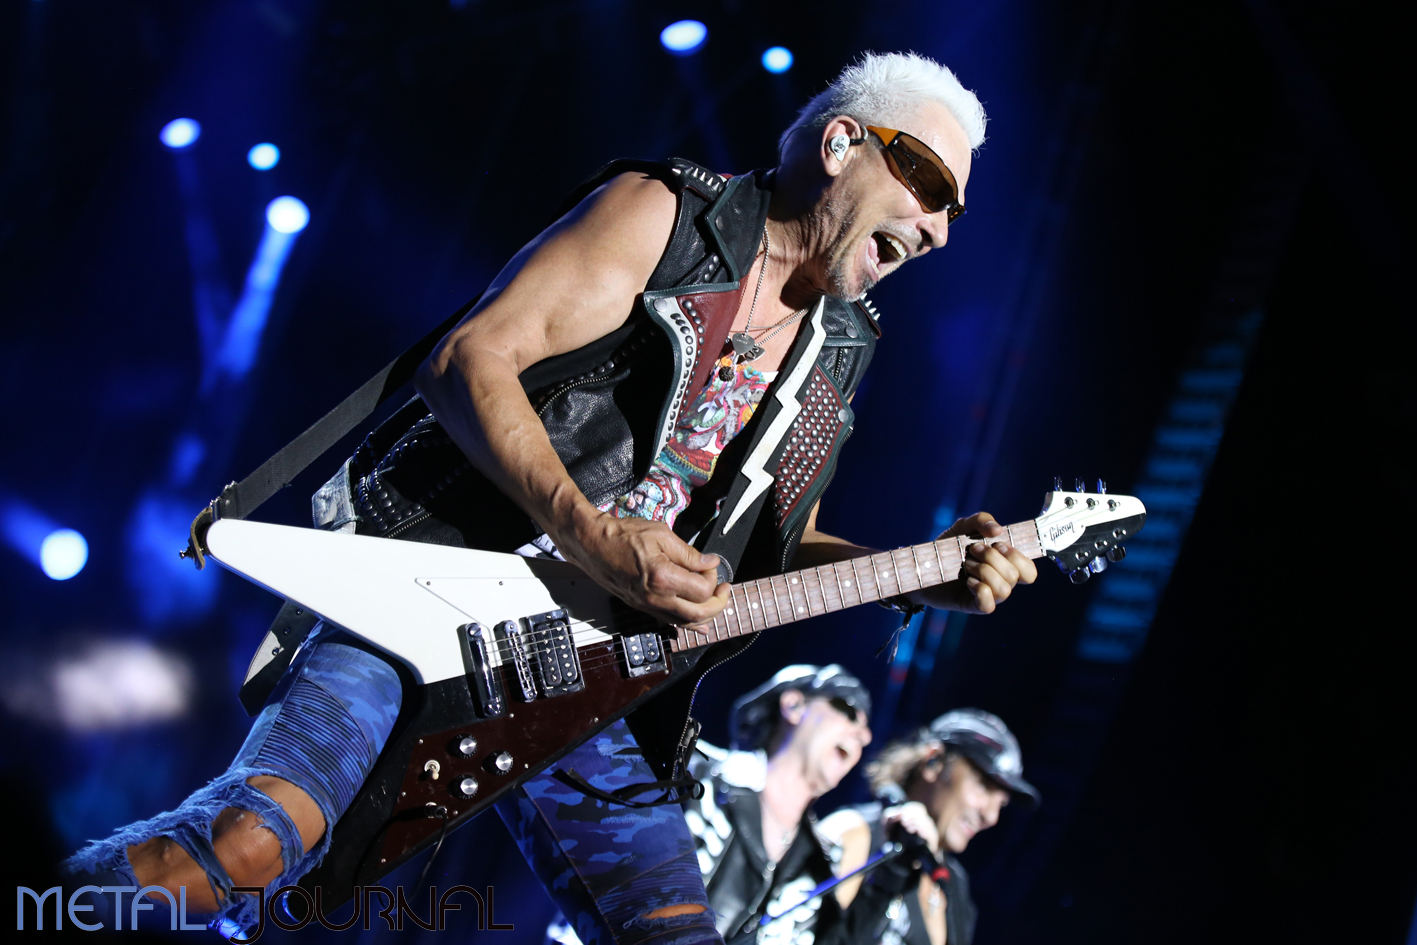 scorpions rock fest 18 - metal journal pic 6